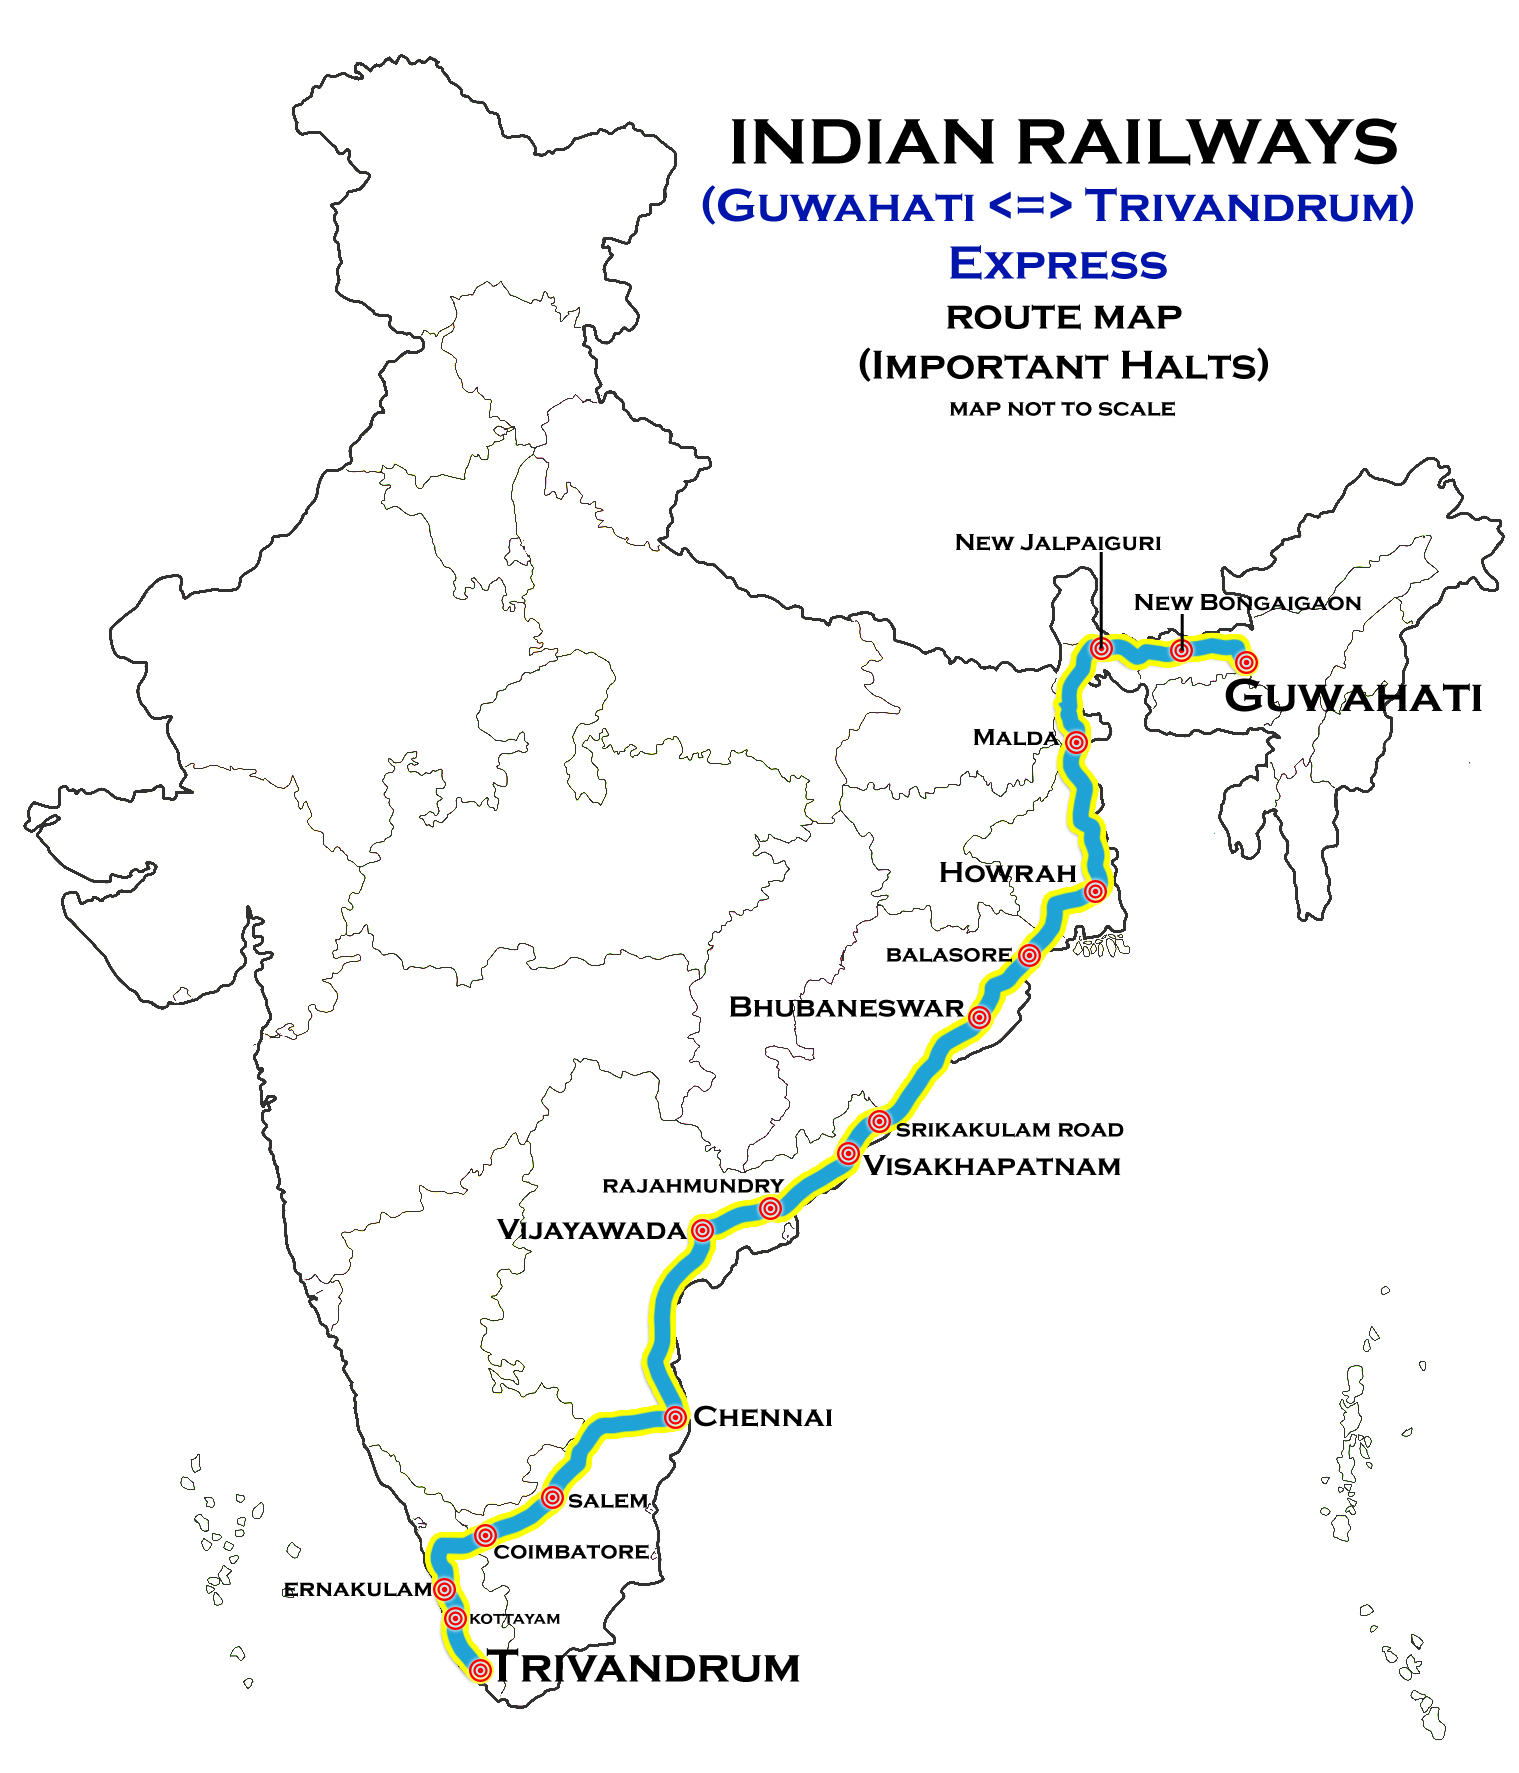 Thiruvananthapuram - Silchar Superfast Express - Wikipedia on indian railway food, indian railways logo, indian railway network, indian railway enquiry, auto train route map, indian rail route, us train routes map, indian railway fare table, indian railway ticket availability, pakistan railway track map, indian railways seat availability, transcontinental railroad route map, indian railway schedule, european train route map, indian railway reservation, india railway map, indian railway timetable, indian railway stations, mt. shasta route map, ferdinand magellan's route map,